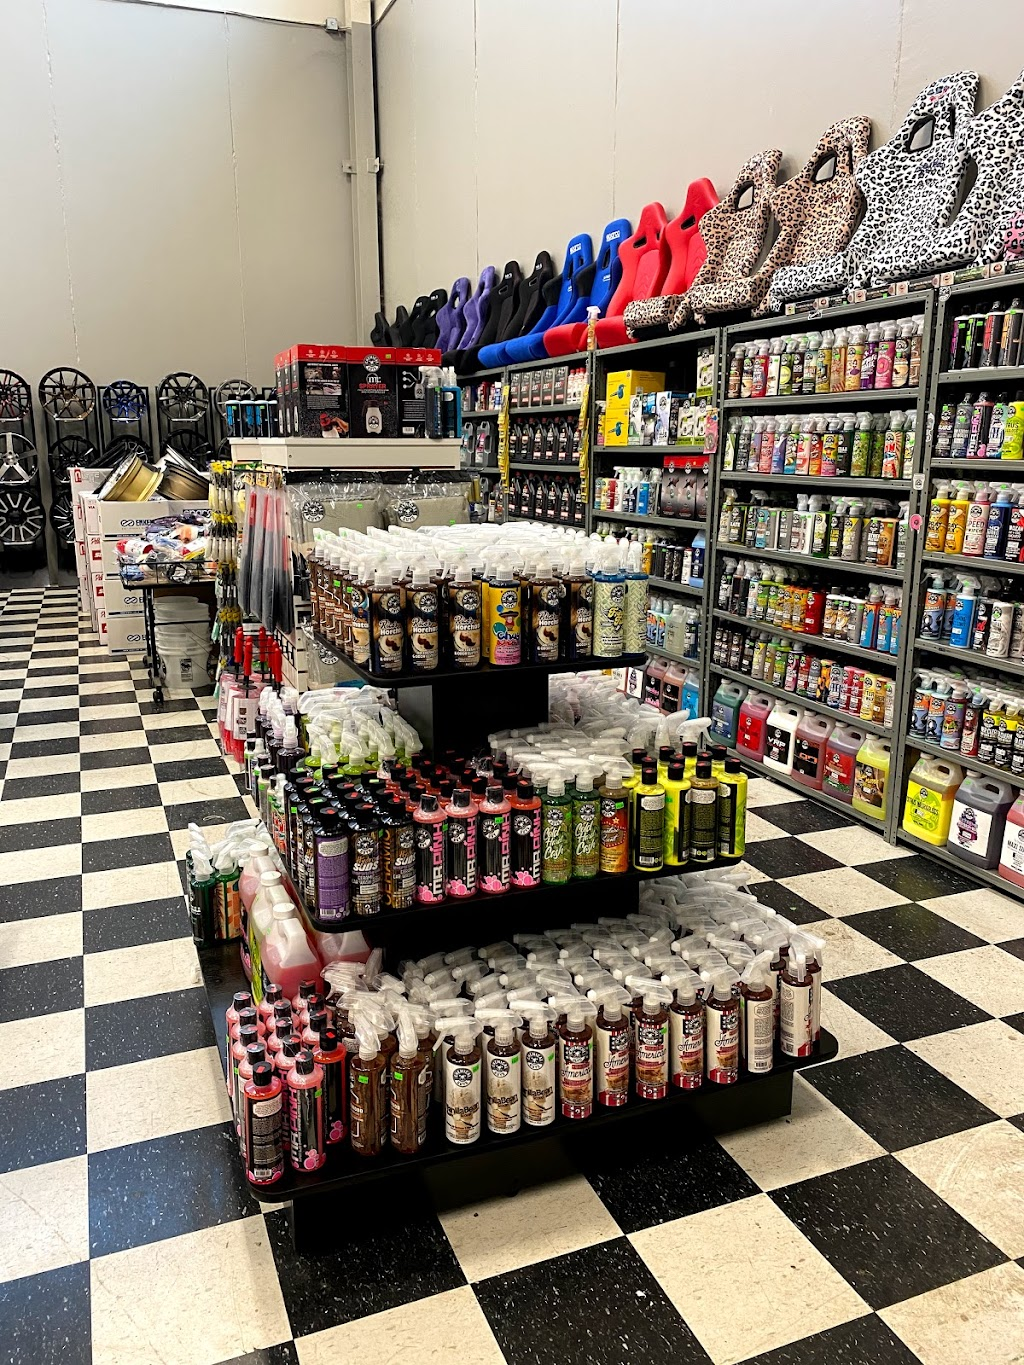 Automotive Warehouse Auto Parts & Accesories - car repair  | Photo 2 of 10 | Address: 343 Airport Rd, Niagara-on-the-Lake, ON L0S 1J0, Canada | Phone: (905) 682-1711